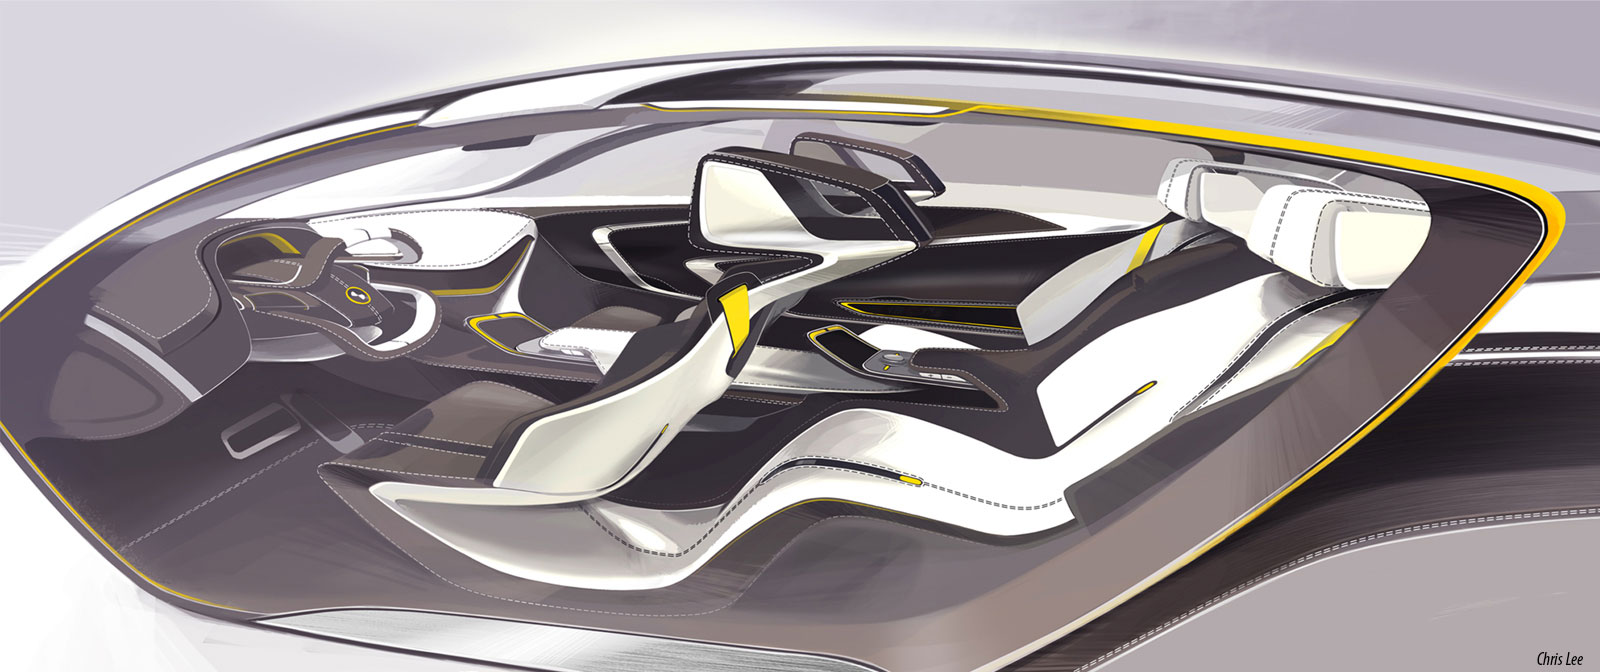 Art center graduate envisions the bmw i of the future - Car interior design ...